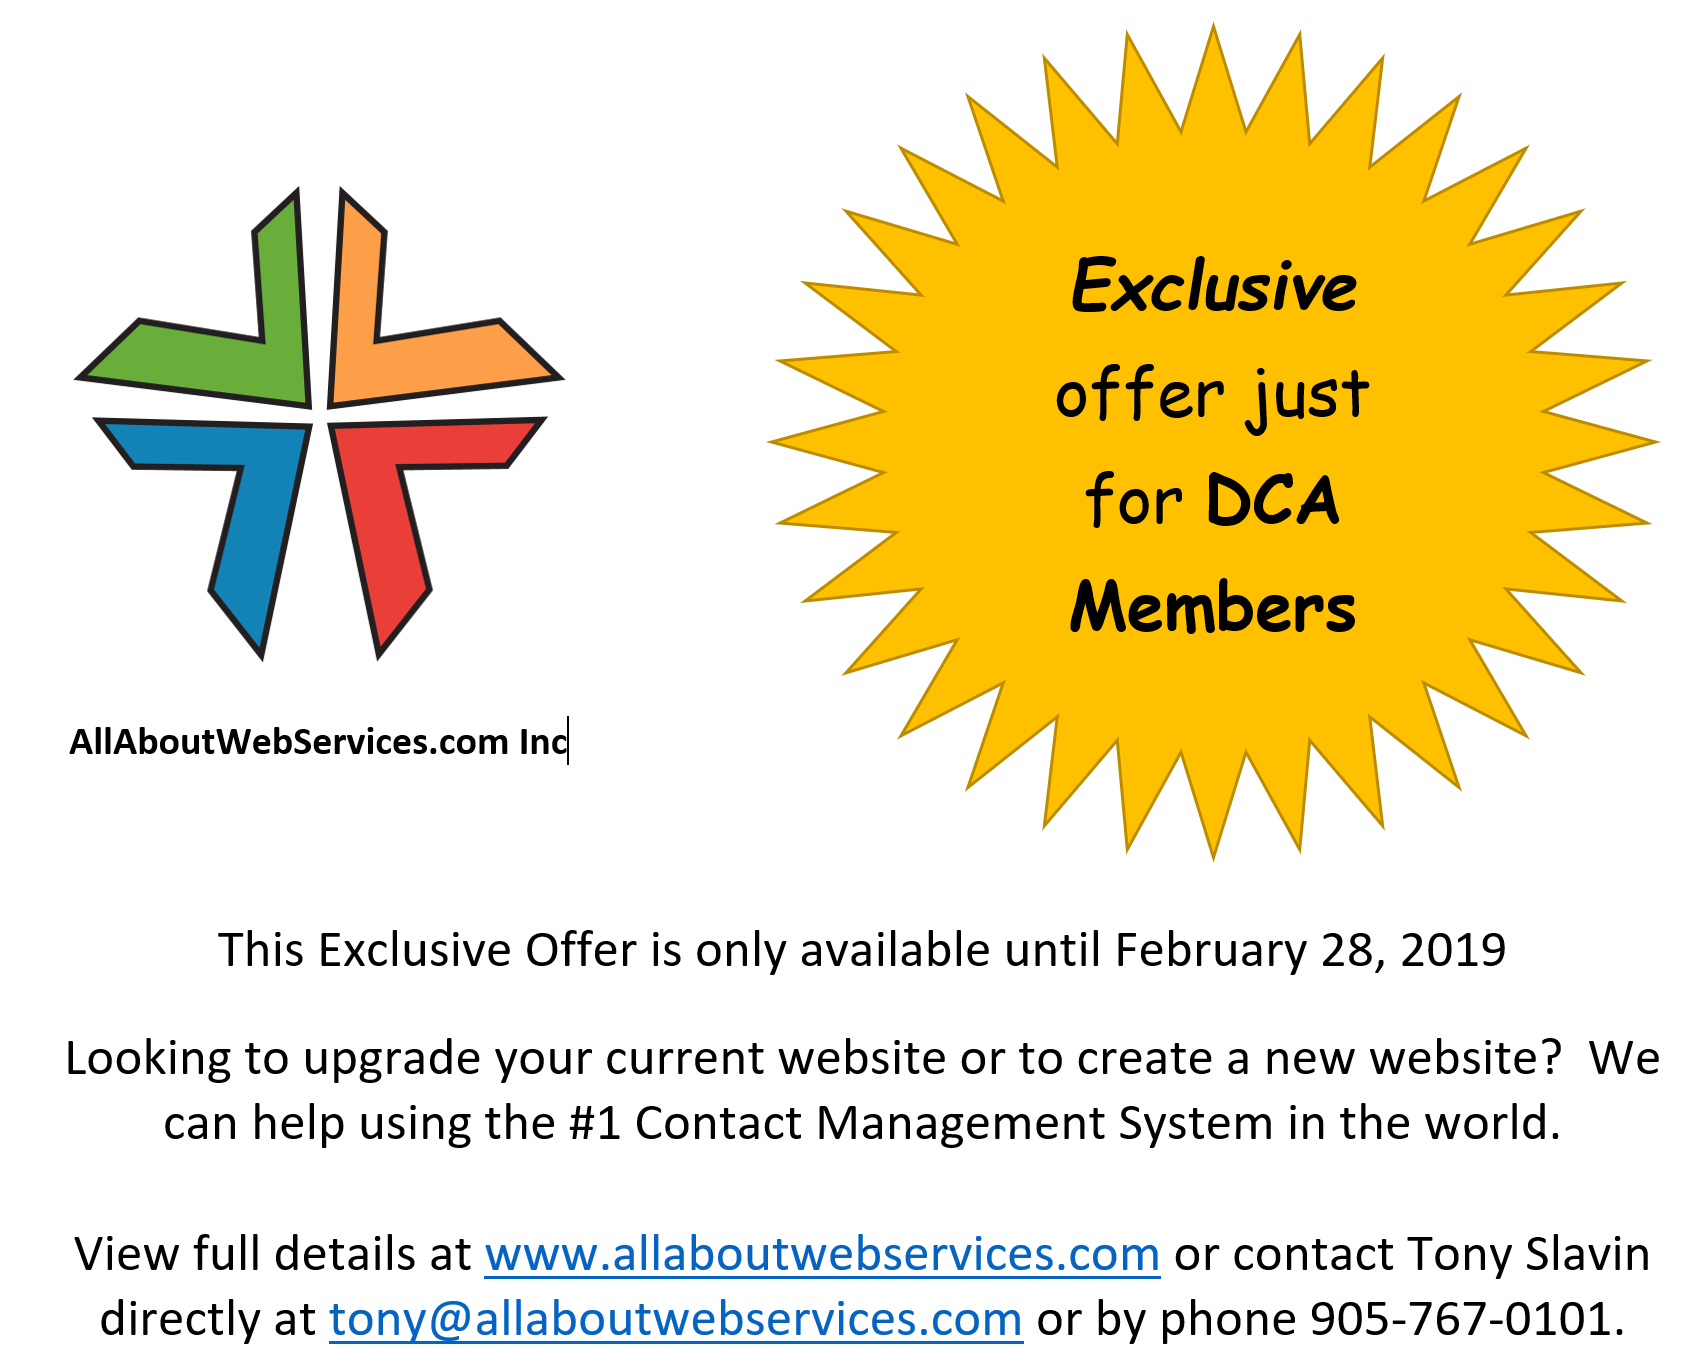 AAWS Special Offer Feb 28 2019